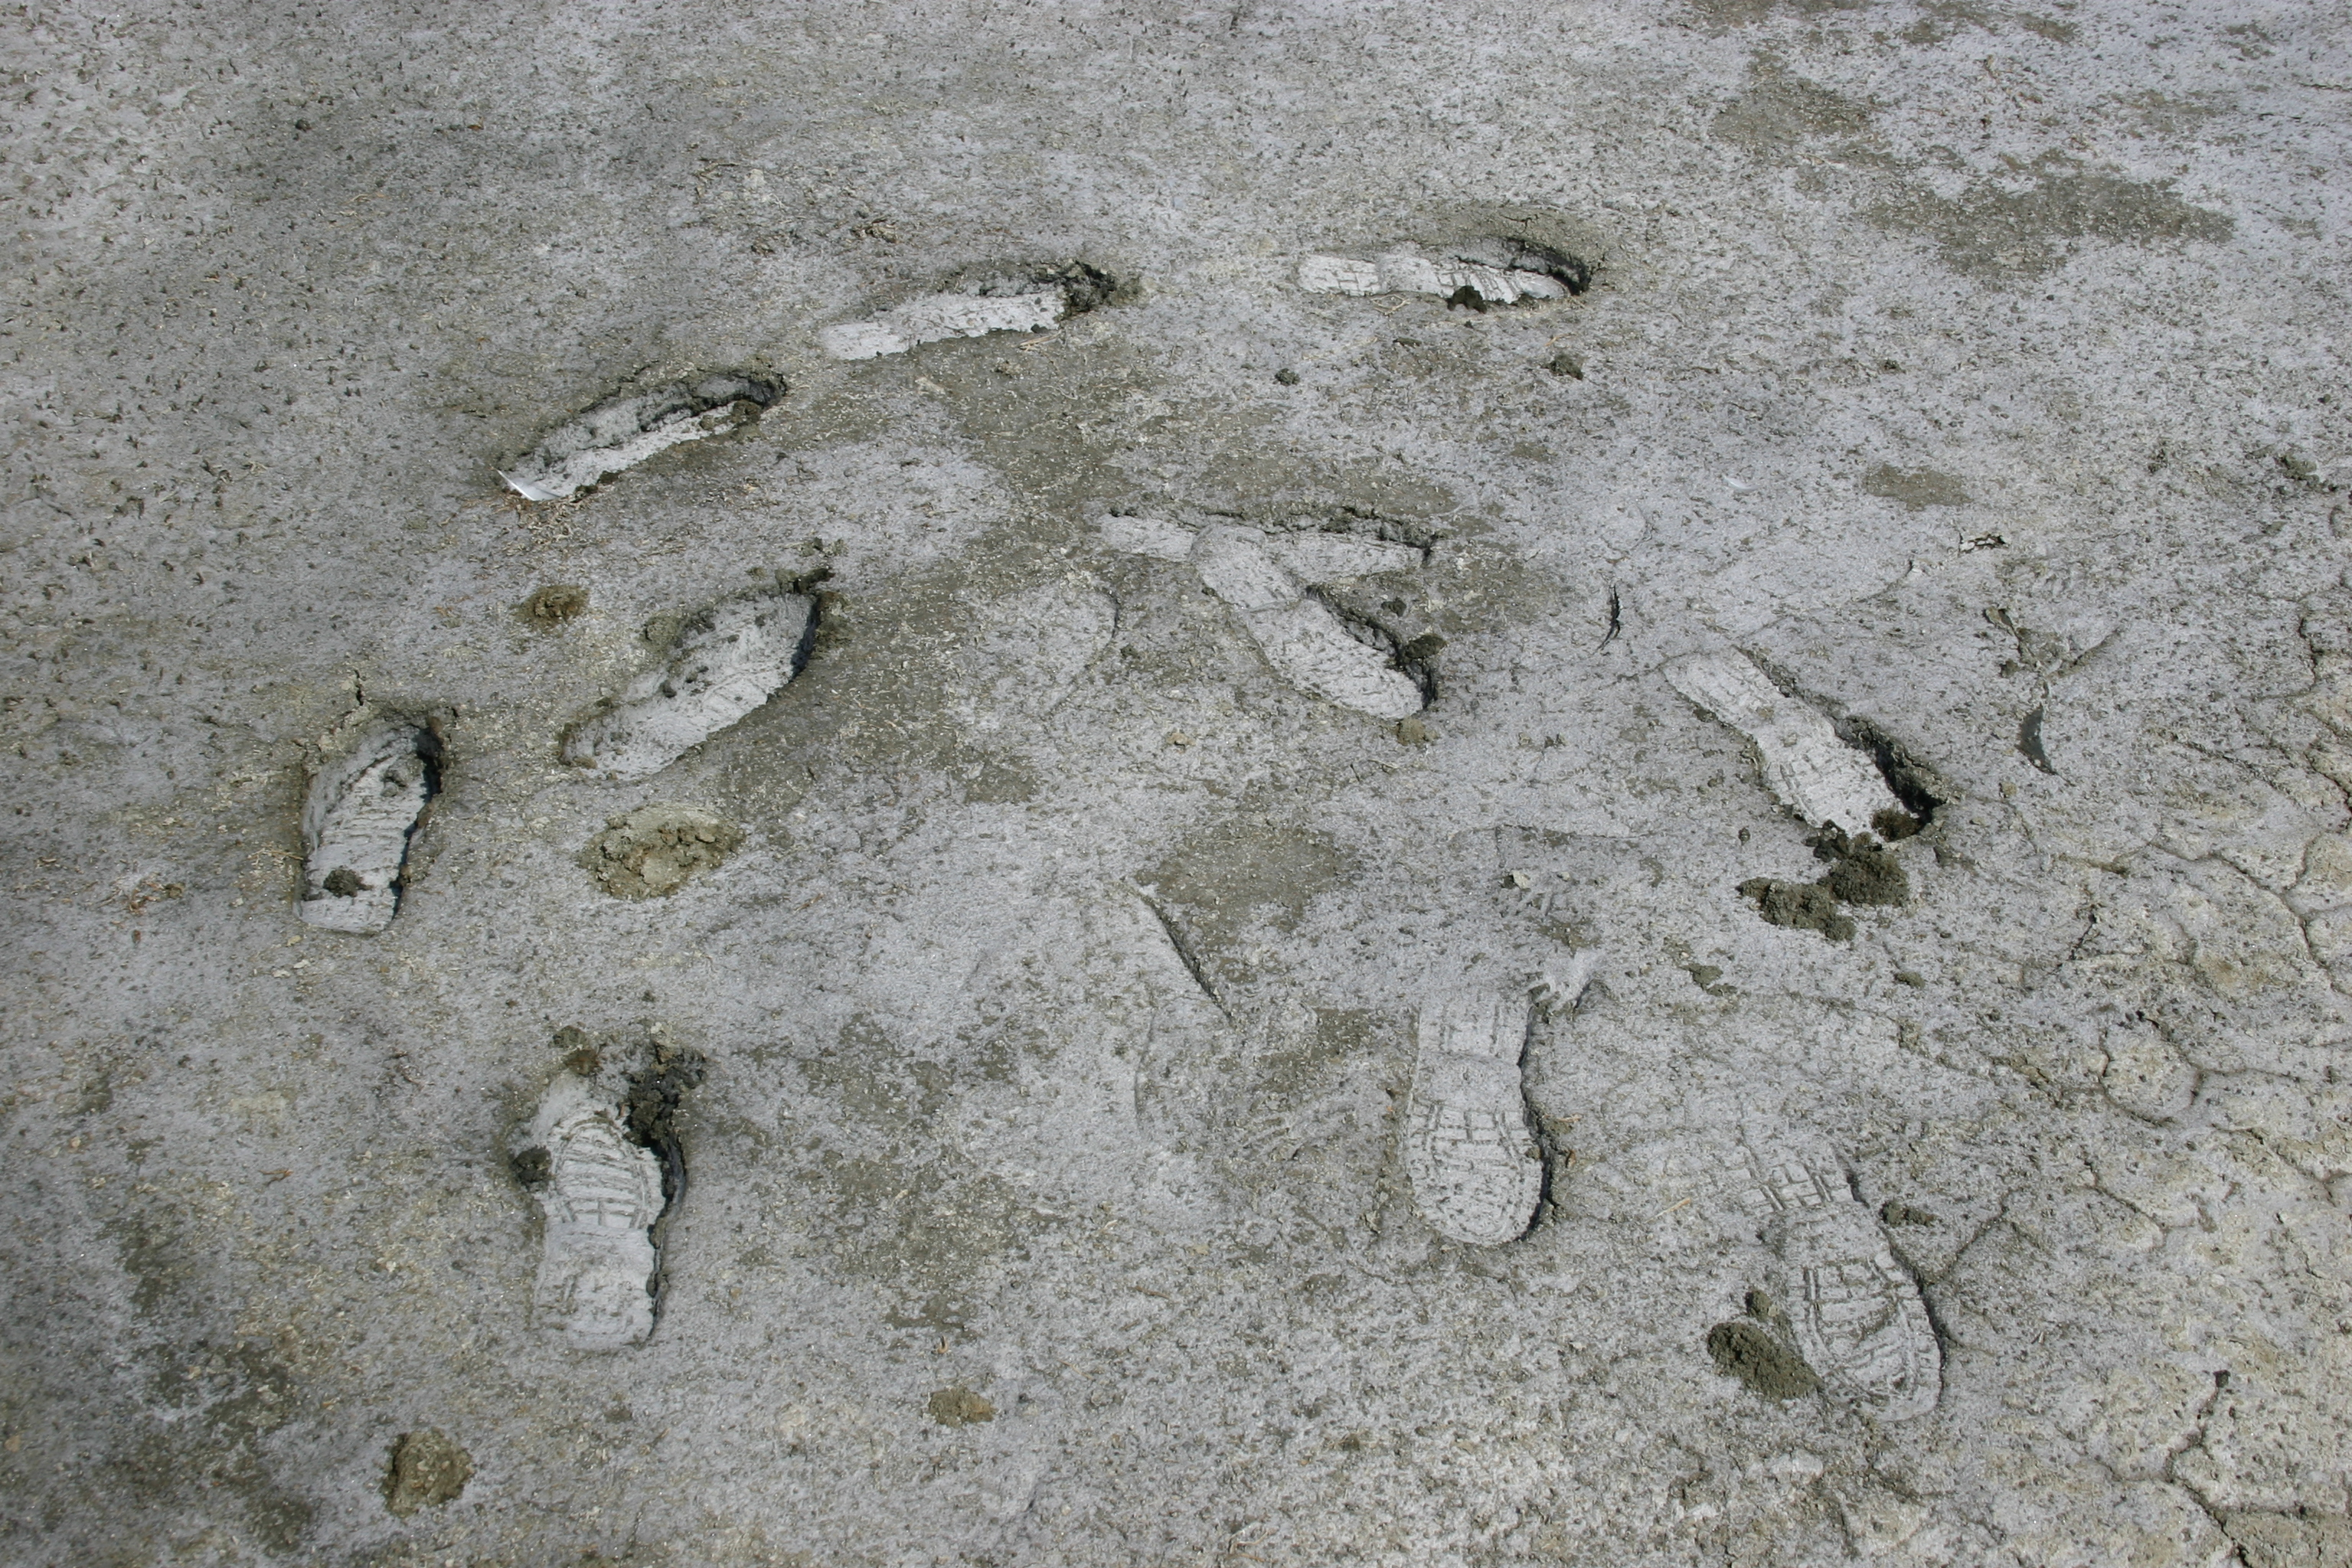 Human shoeprints circle in the mud of a salt marsh.